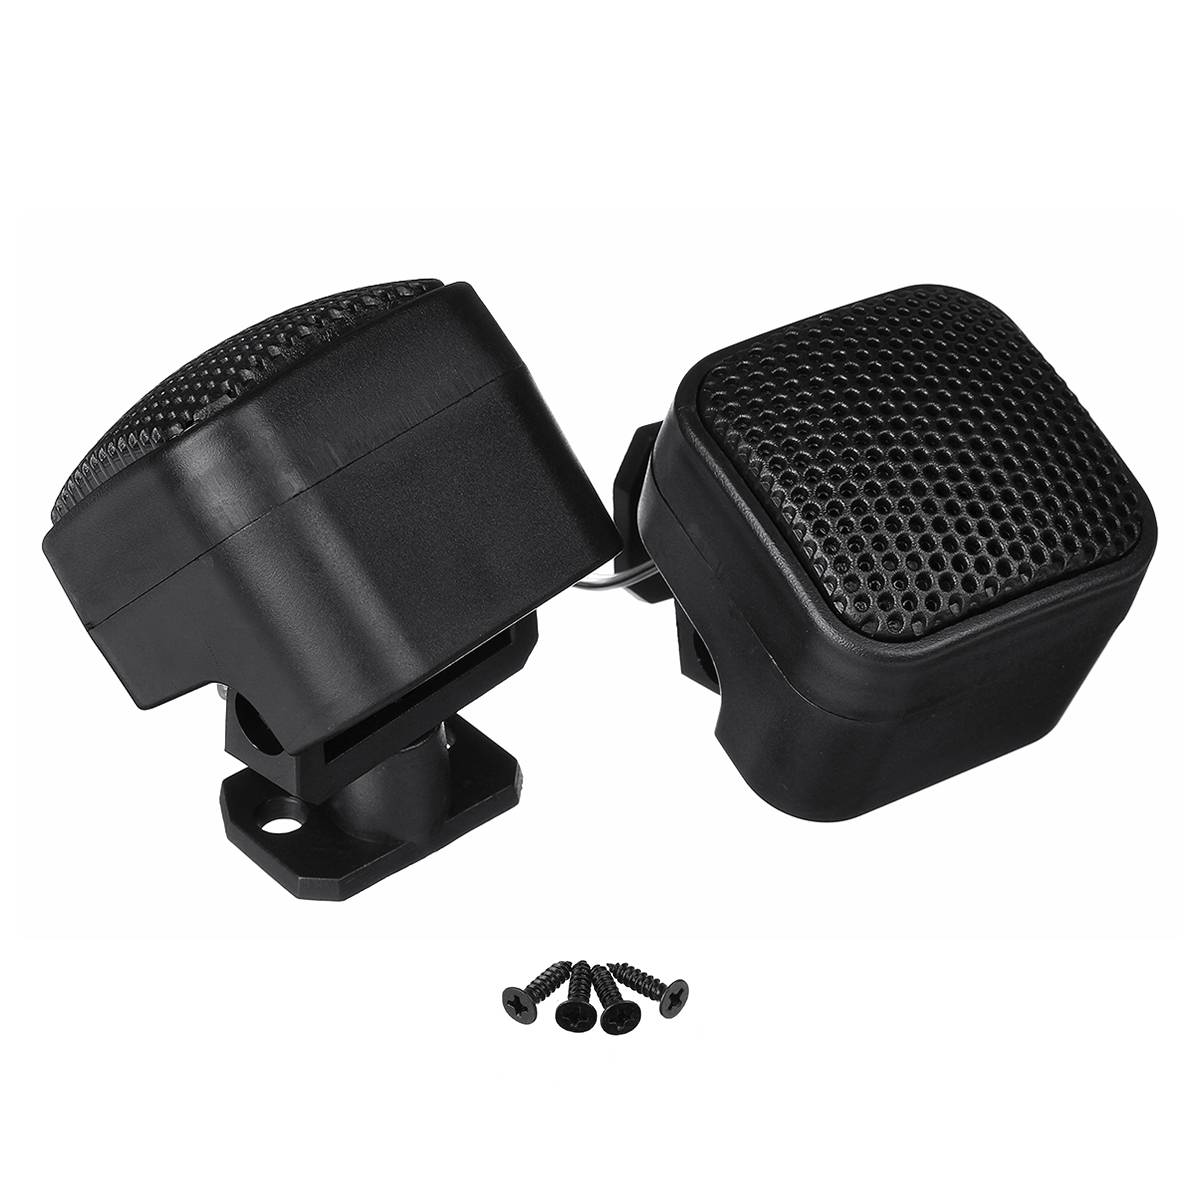 TP-004 2pcs <font><b>Car</b></font> Tweeters <font><b>Audio</b></font> <font><b>Speaker</b></font> Loudspeaker CD MP3 Super Power Universal Auto <font><b>Speakers</b></font> For IPod 12V 500W image